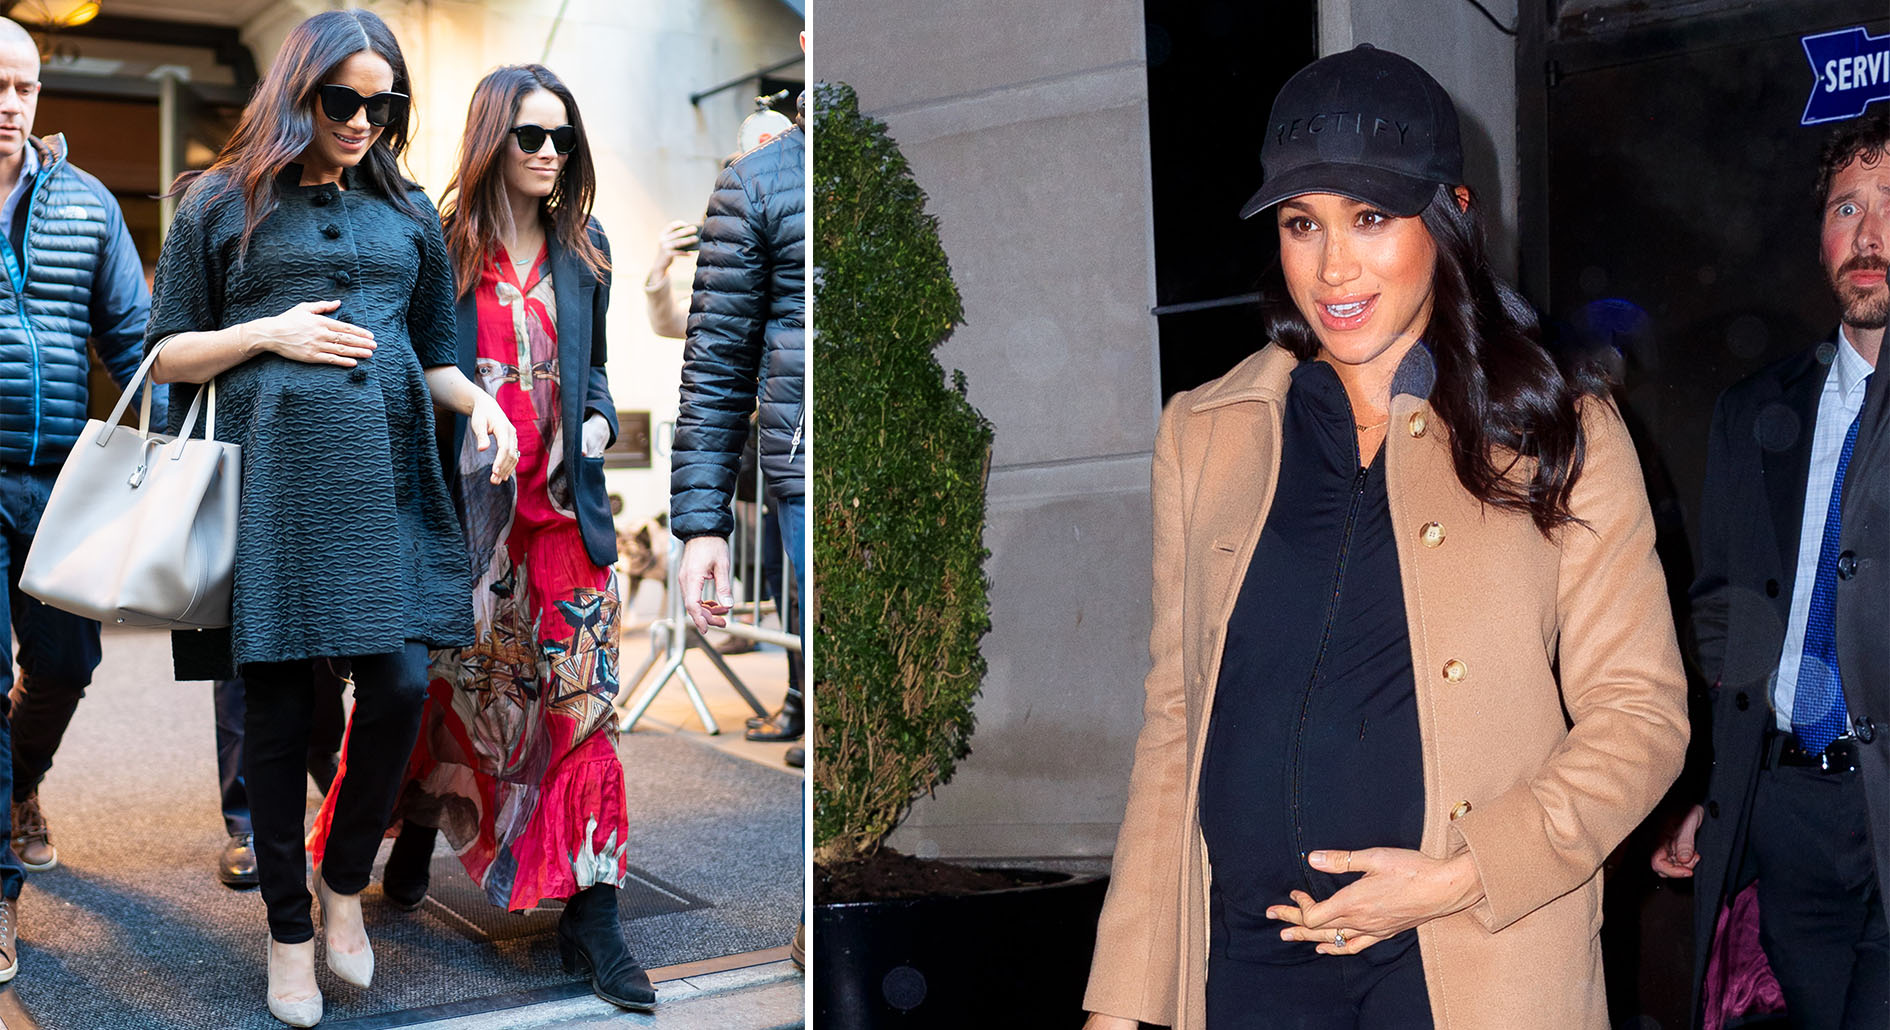 Meghan in New York for her baby shower. [Photos: Getty]